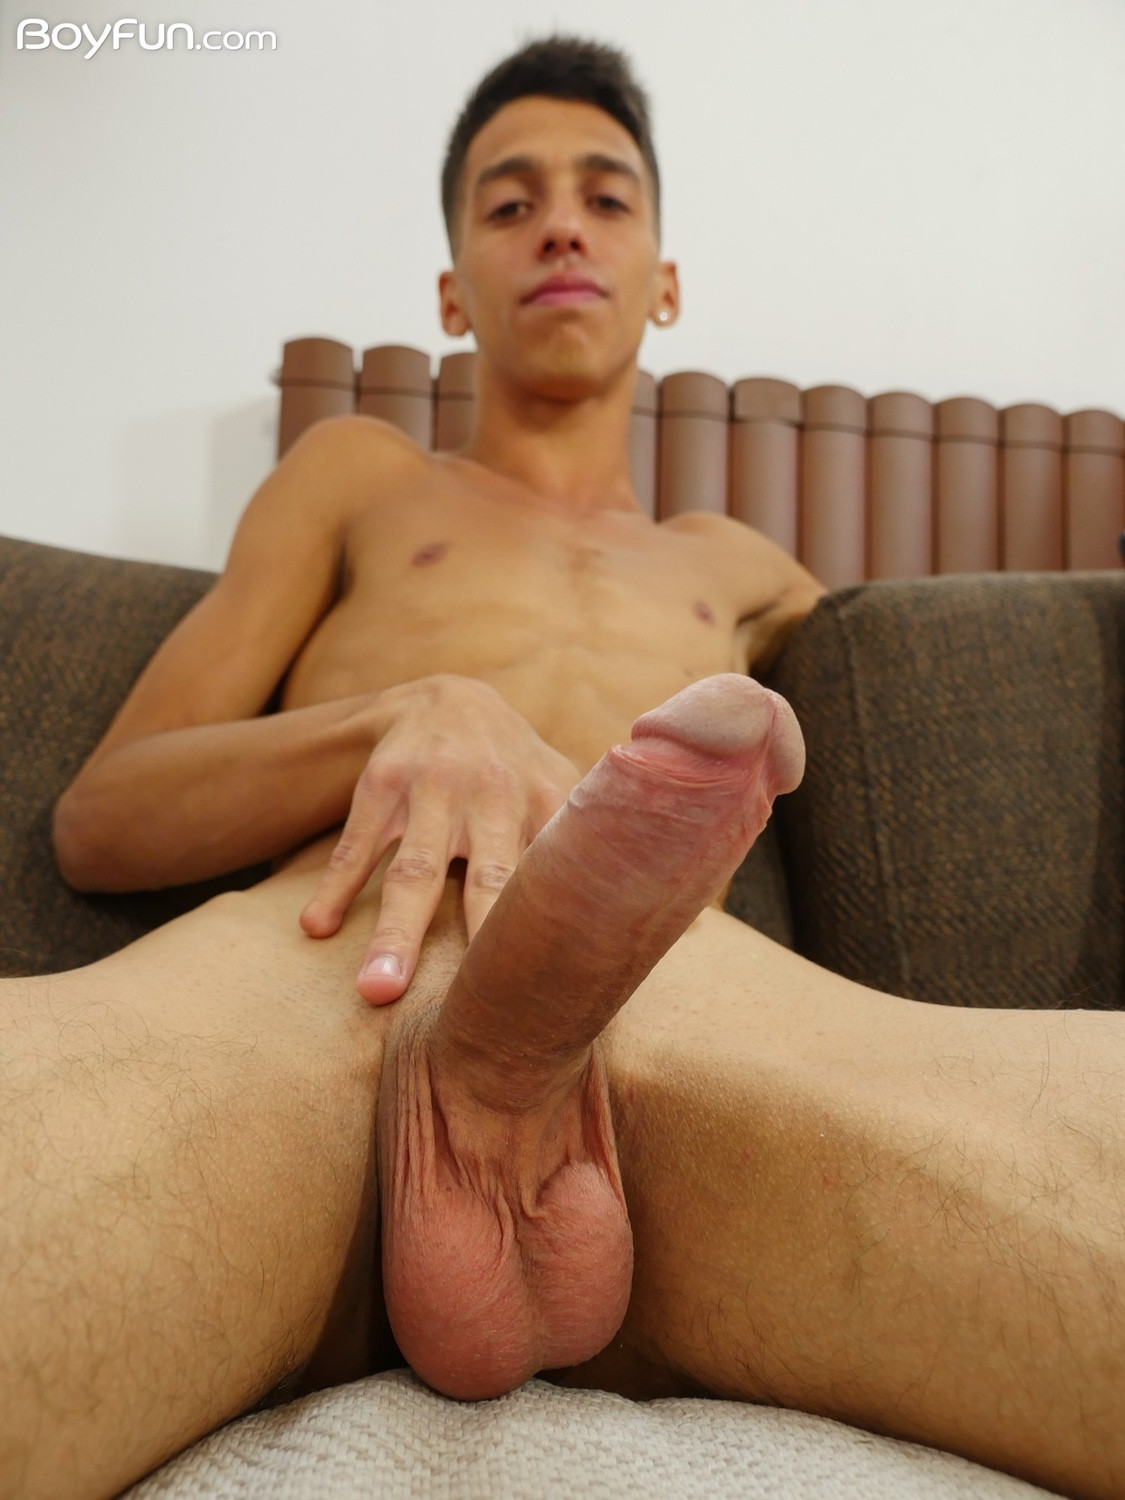 BoyFun – Joseph Holland